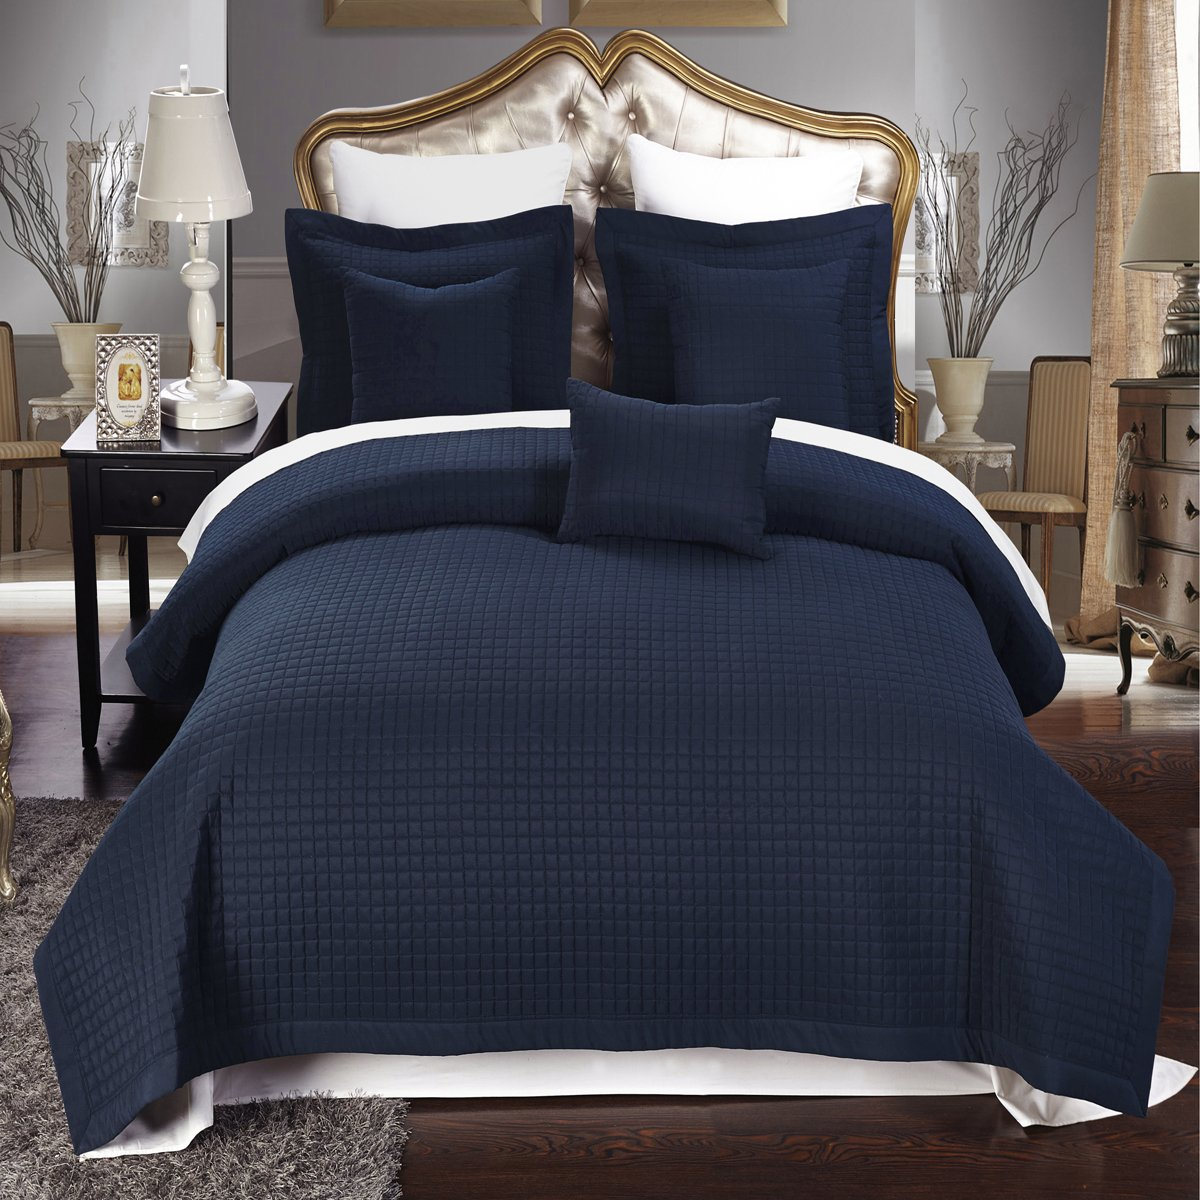 Navy Blue Bedding Webnuggetz Com